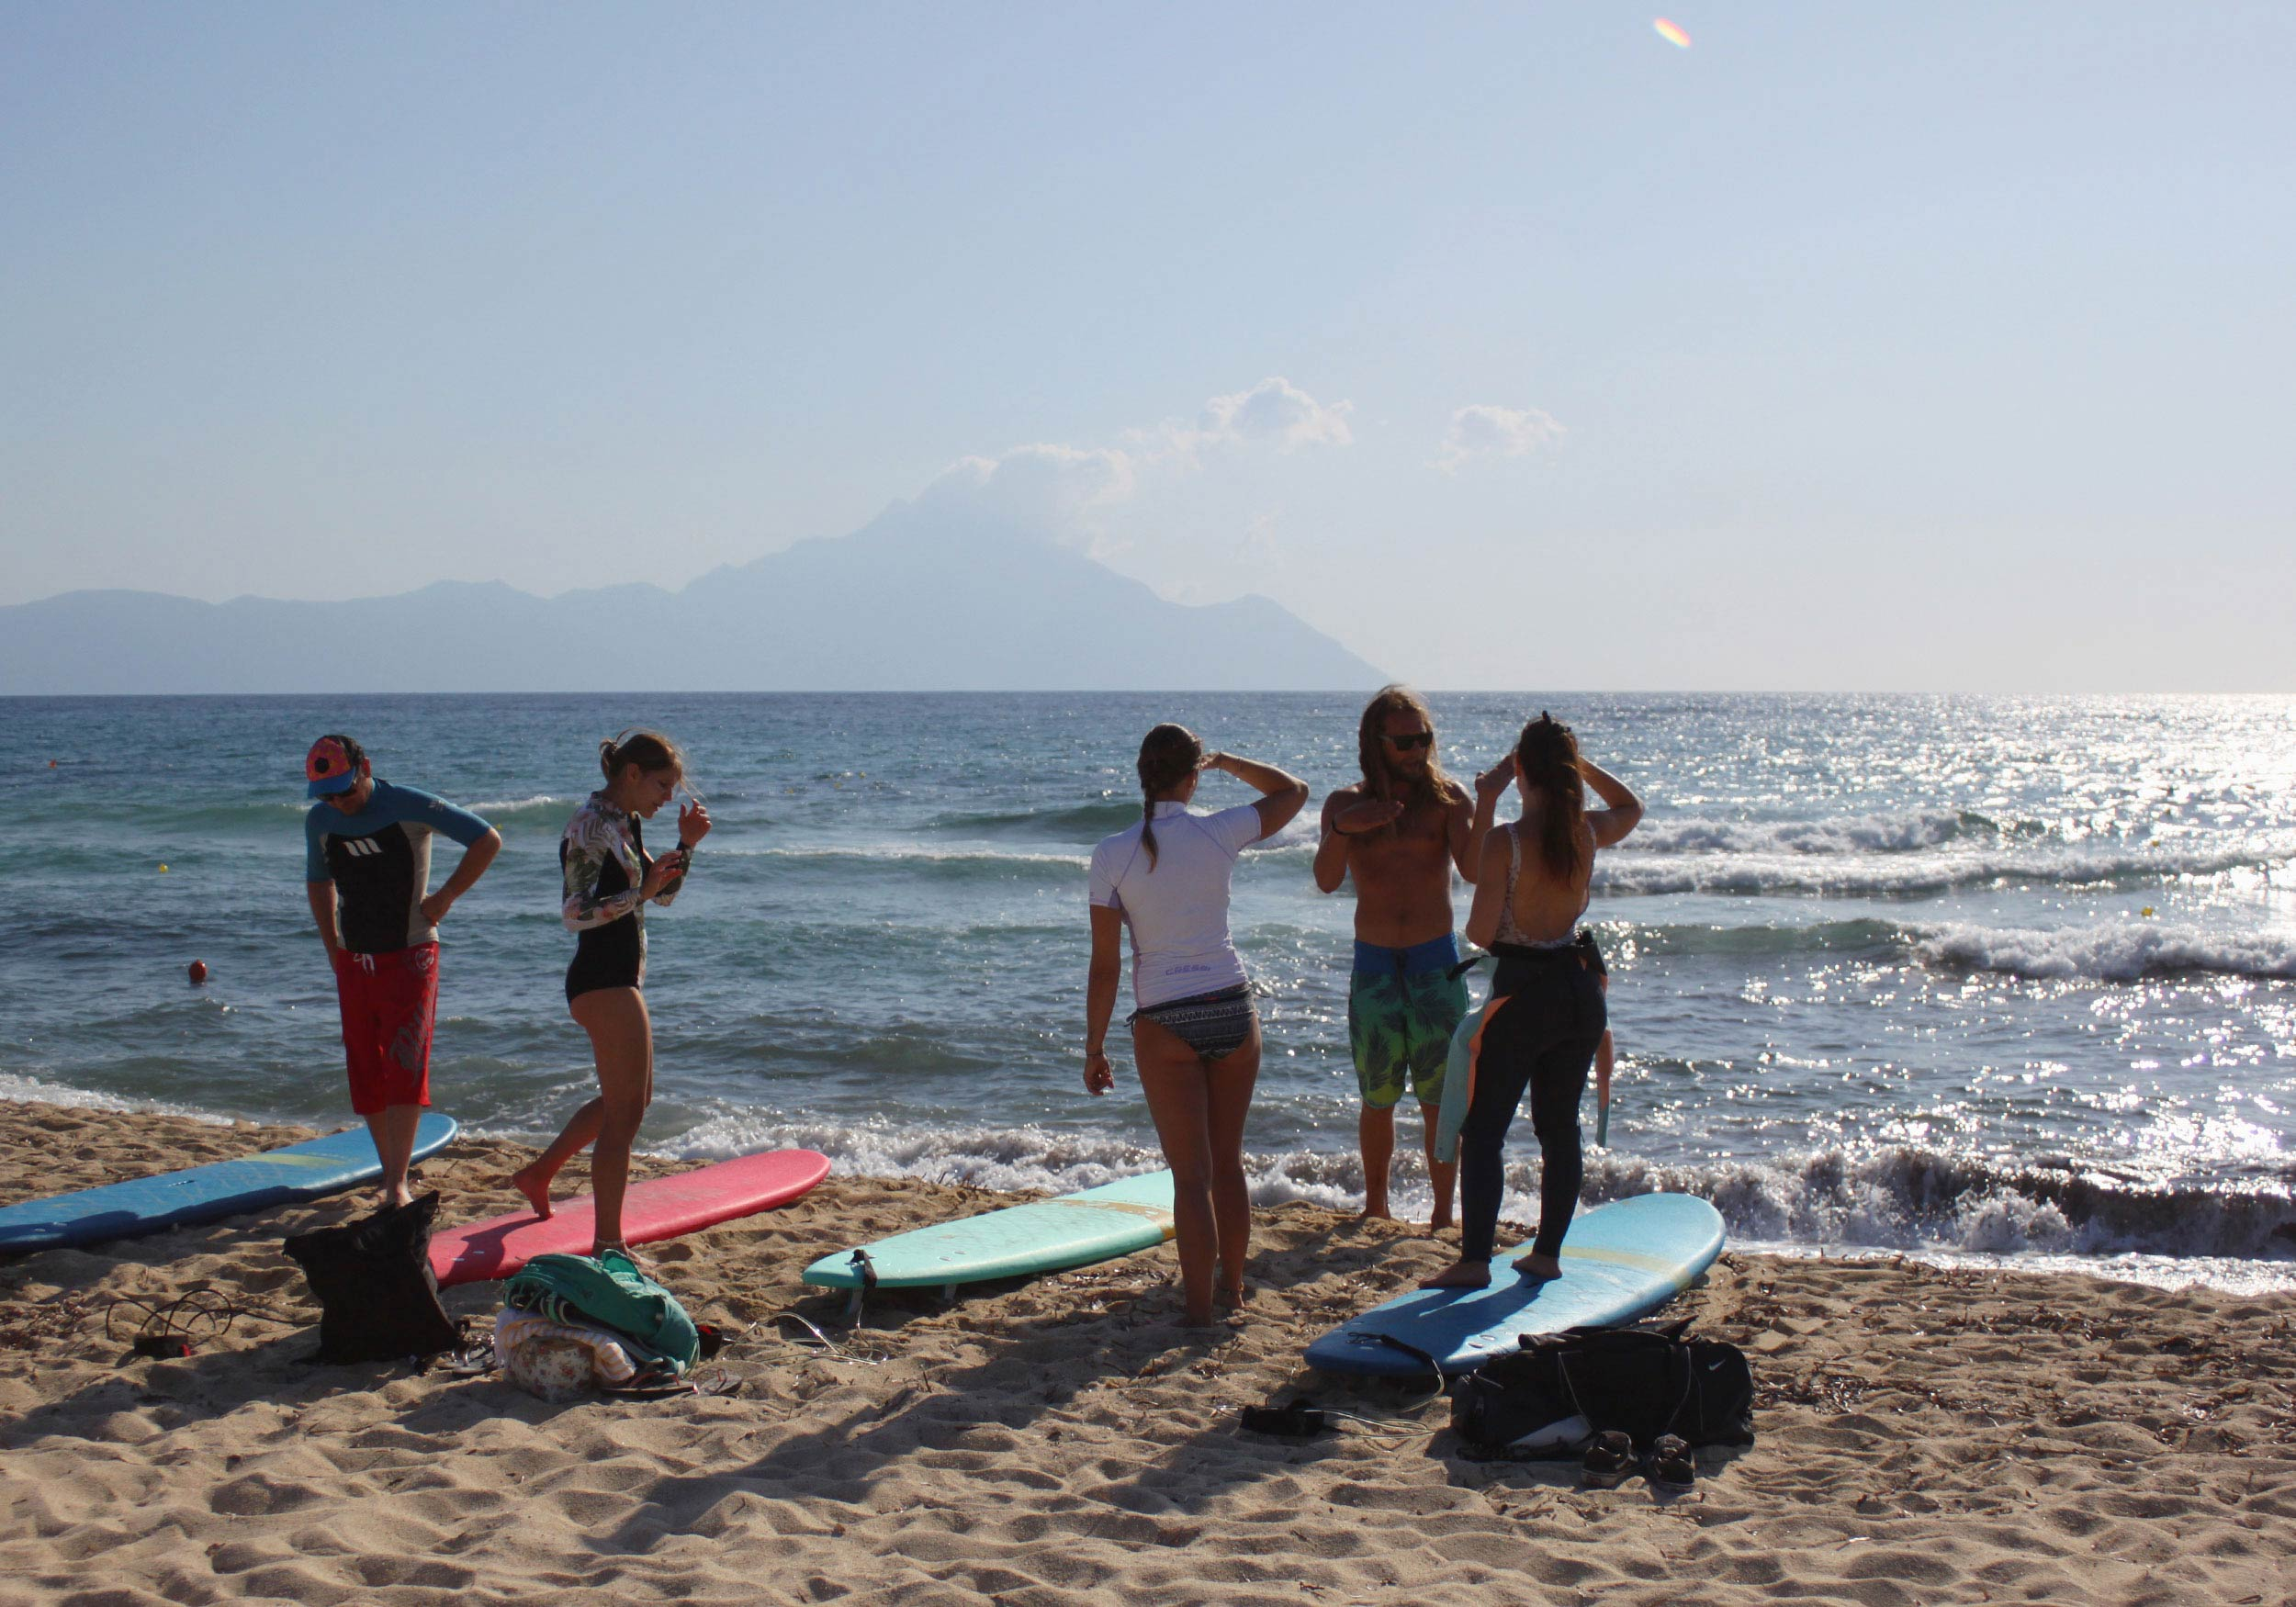 Surfing instructor and students